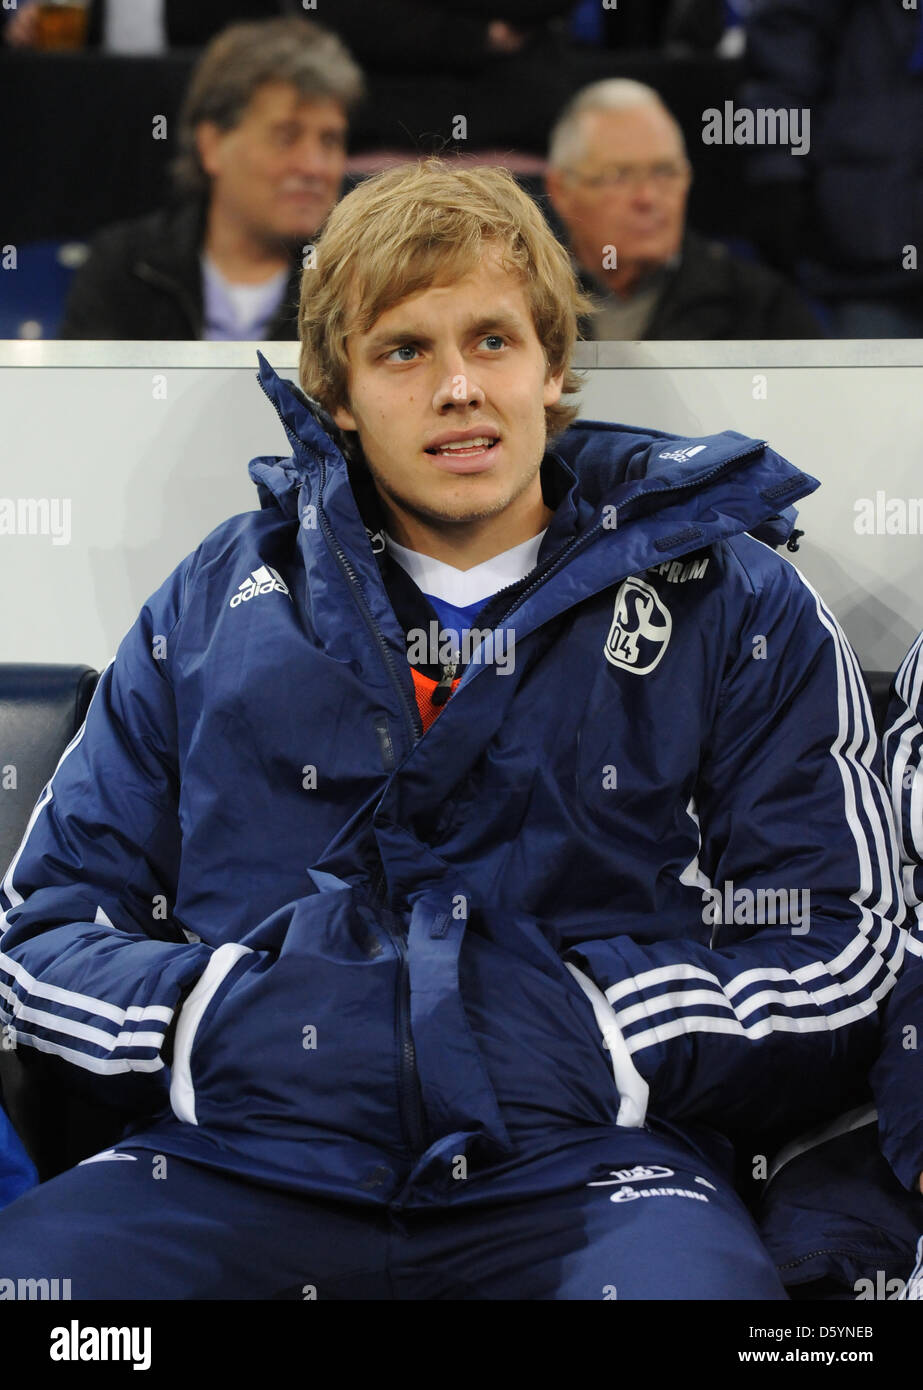 Schalke's Teemu Pukki sits on the substitutes' bensch during the DFB Cup match between FC Schalke 04 and - Stock Image